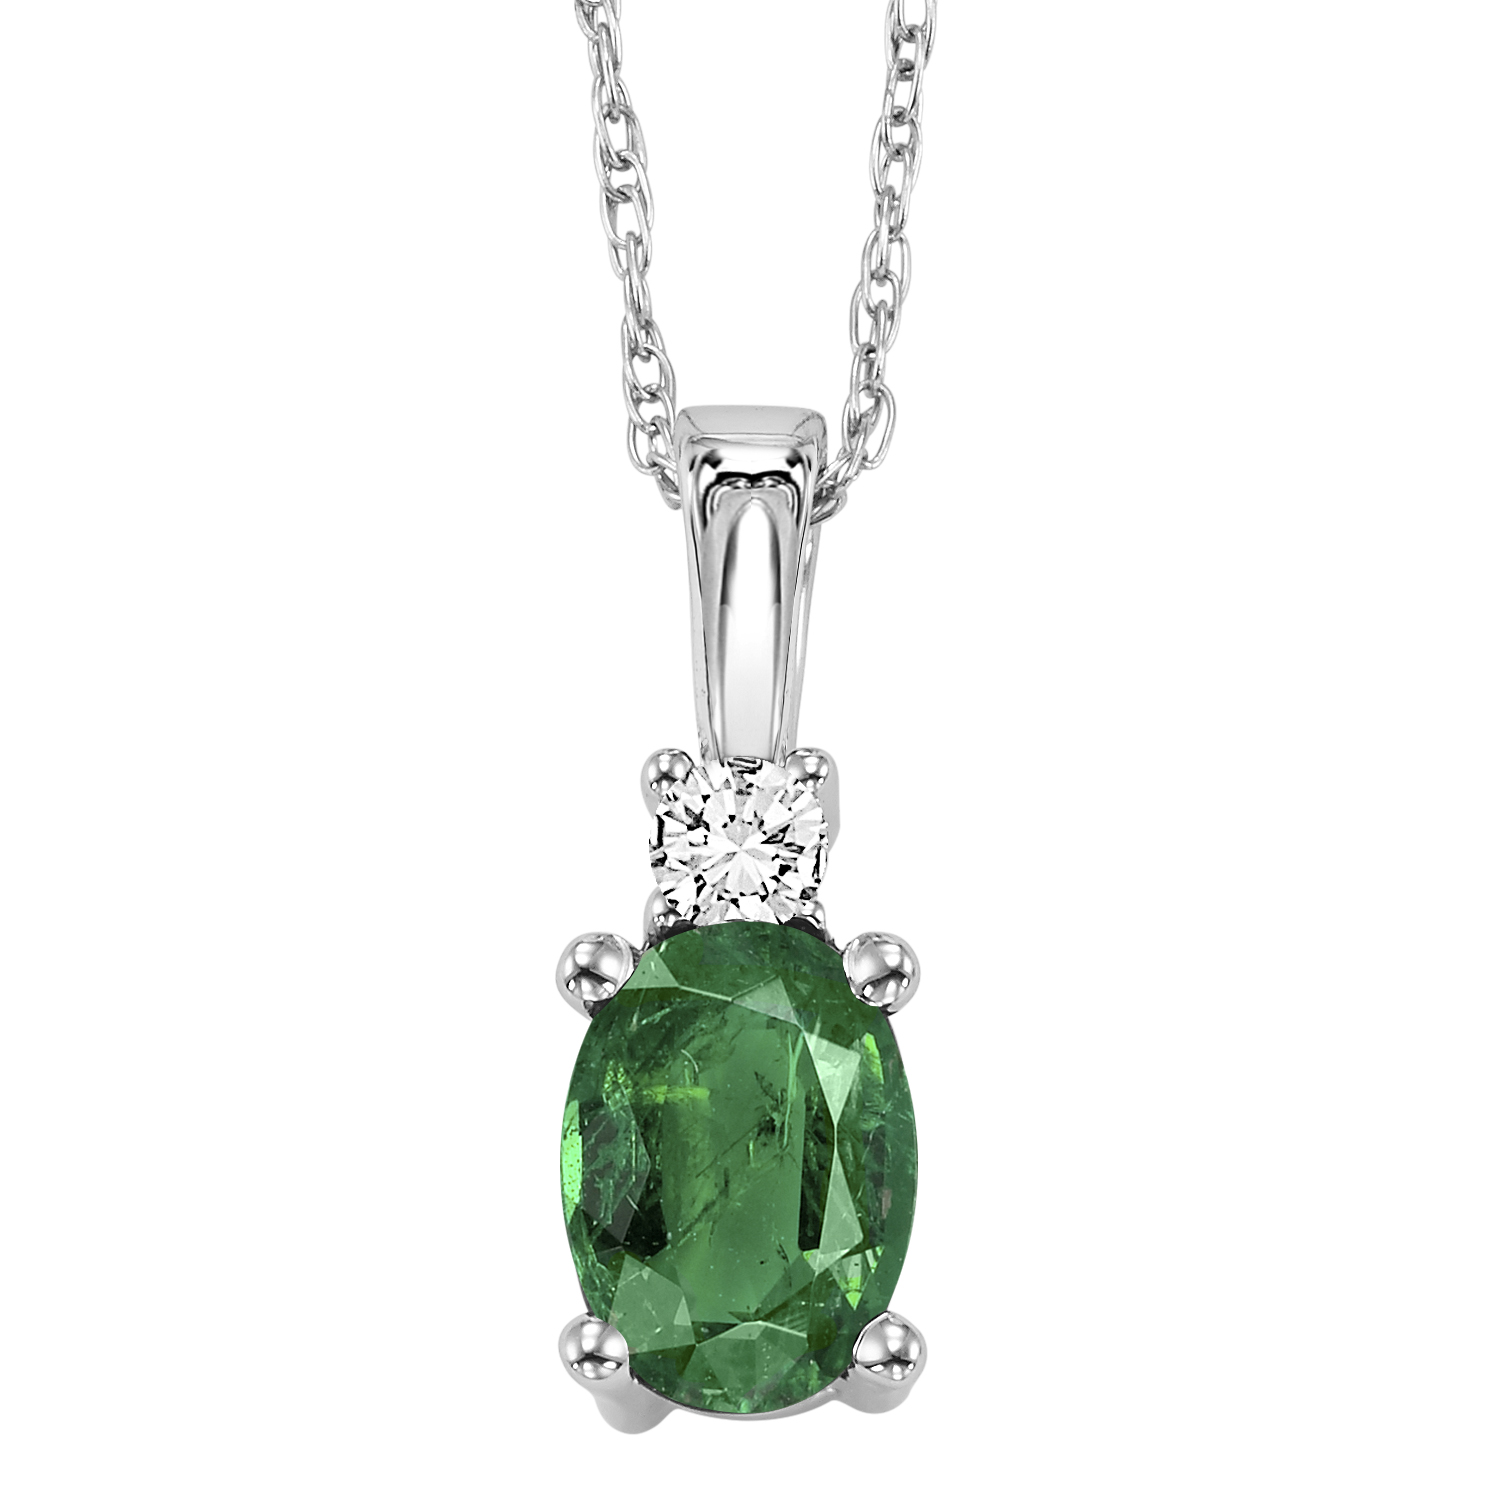 Paw 18.25In Necklace Cubic Zirconia Cheryl M 925 Sterling Silver Rhodium Plated CZ